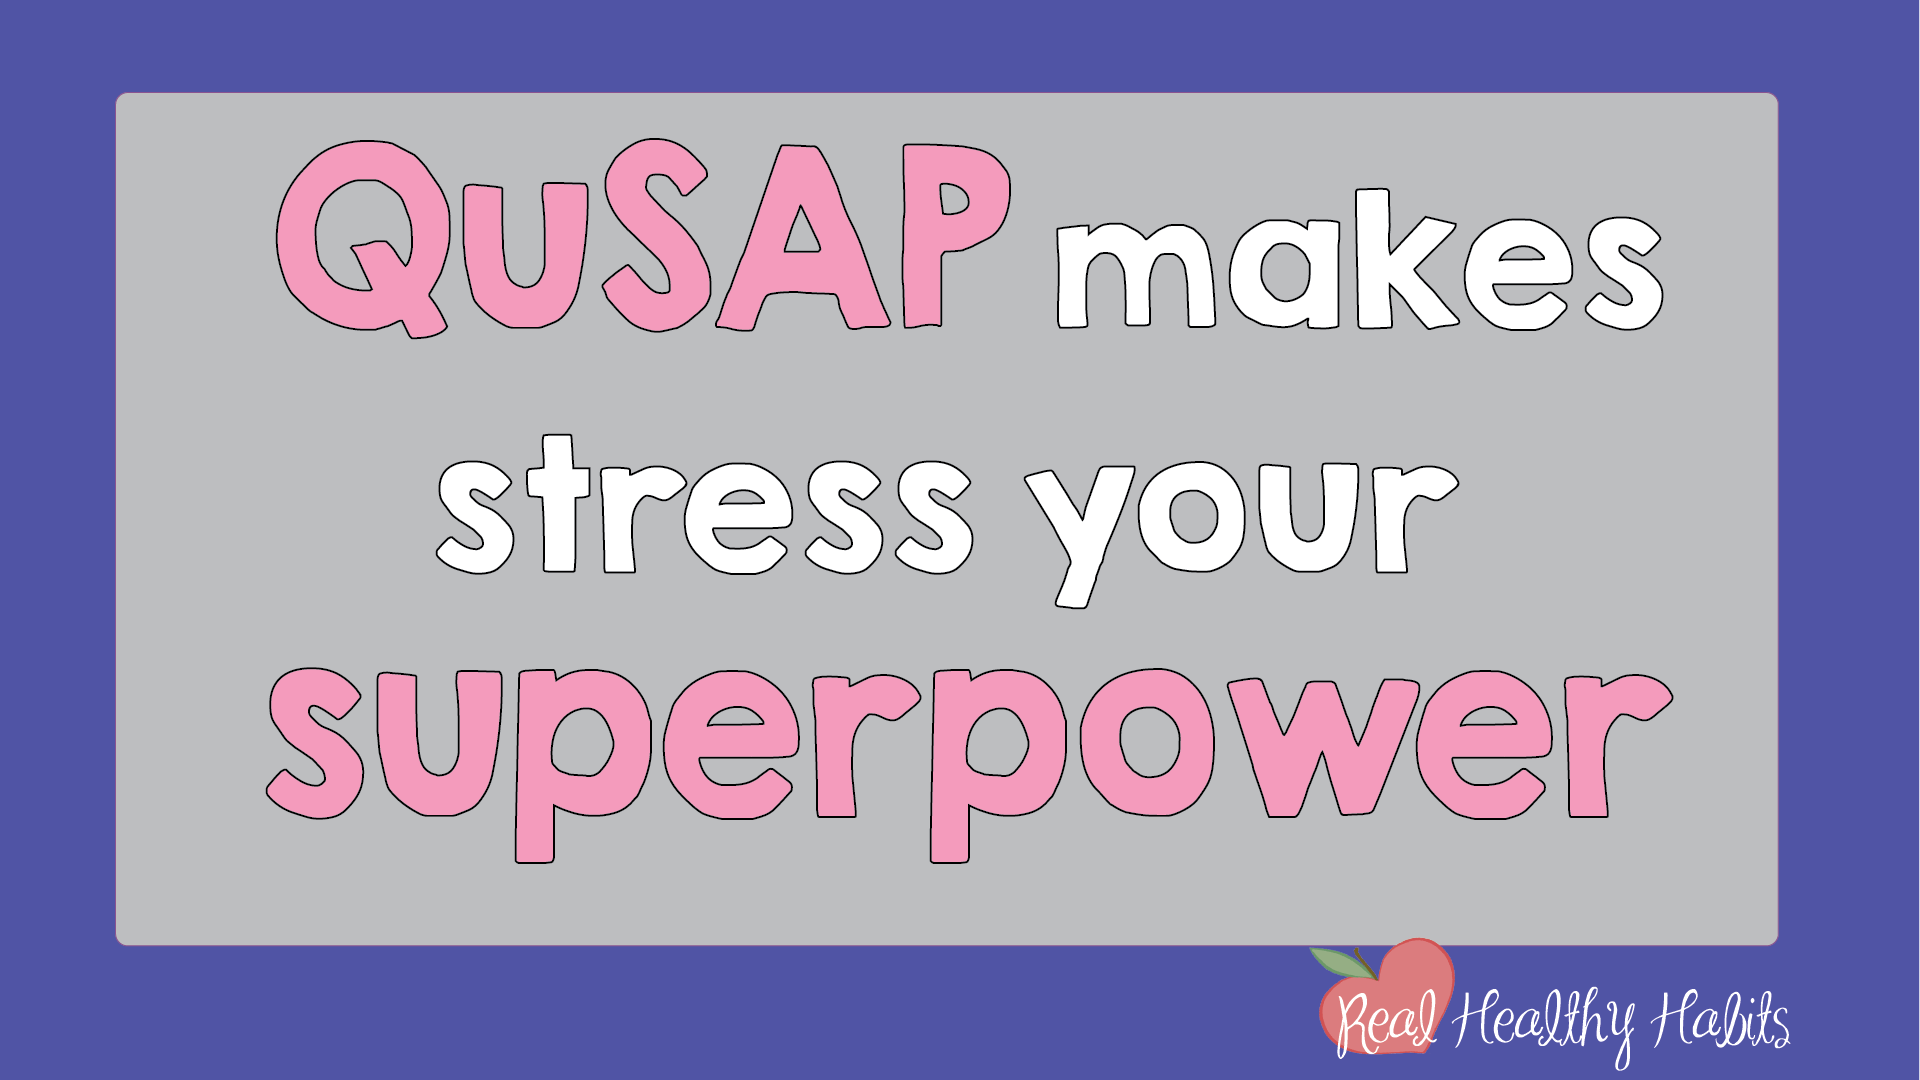 Quick Stress Action Plan (QuSAP) is a simple 1 Minute Habit that Can Transform Your Stress. | How to Make Stress Your Superpower: Transform Your Stress with This Easy One Minute Habit | www.realhealthyhabits.com